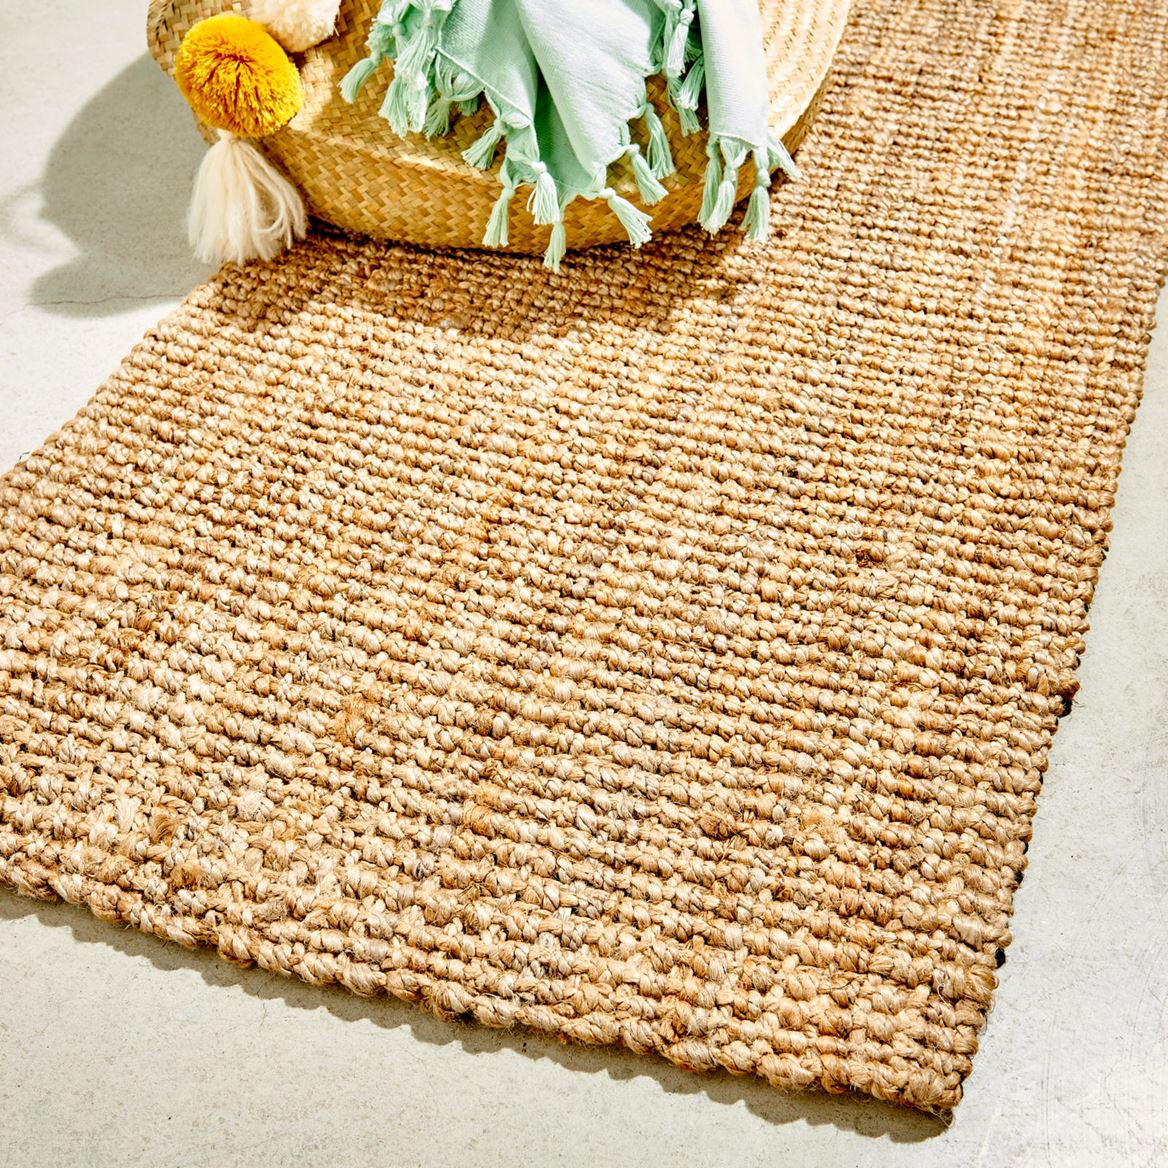 YUNA Tapis naturel Larg. 70 x Long. 140 cm_yuna-tapis-naturel-larg--70-x-long--140-cm